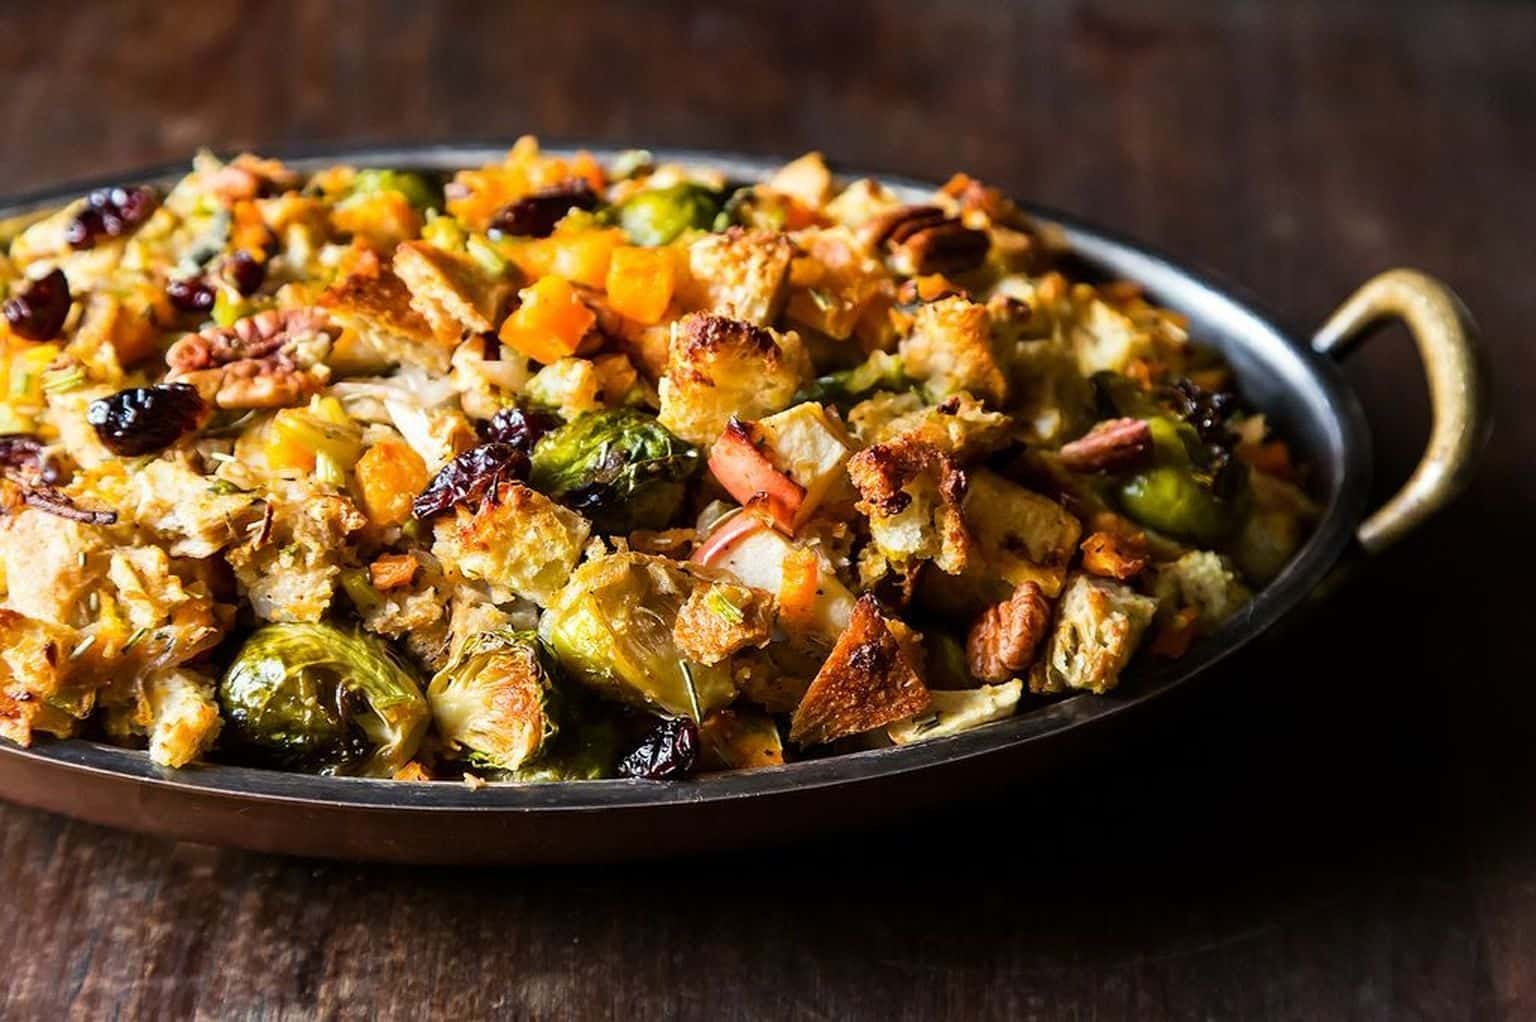 Squash, brussel sprouts, and bread stuffing with apples